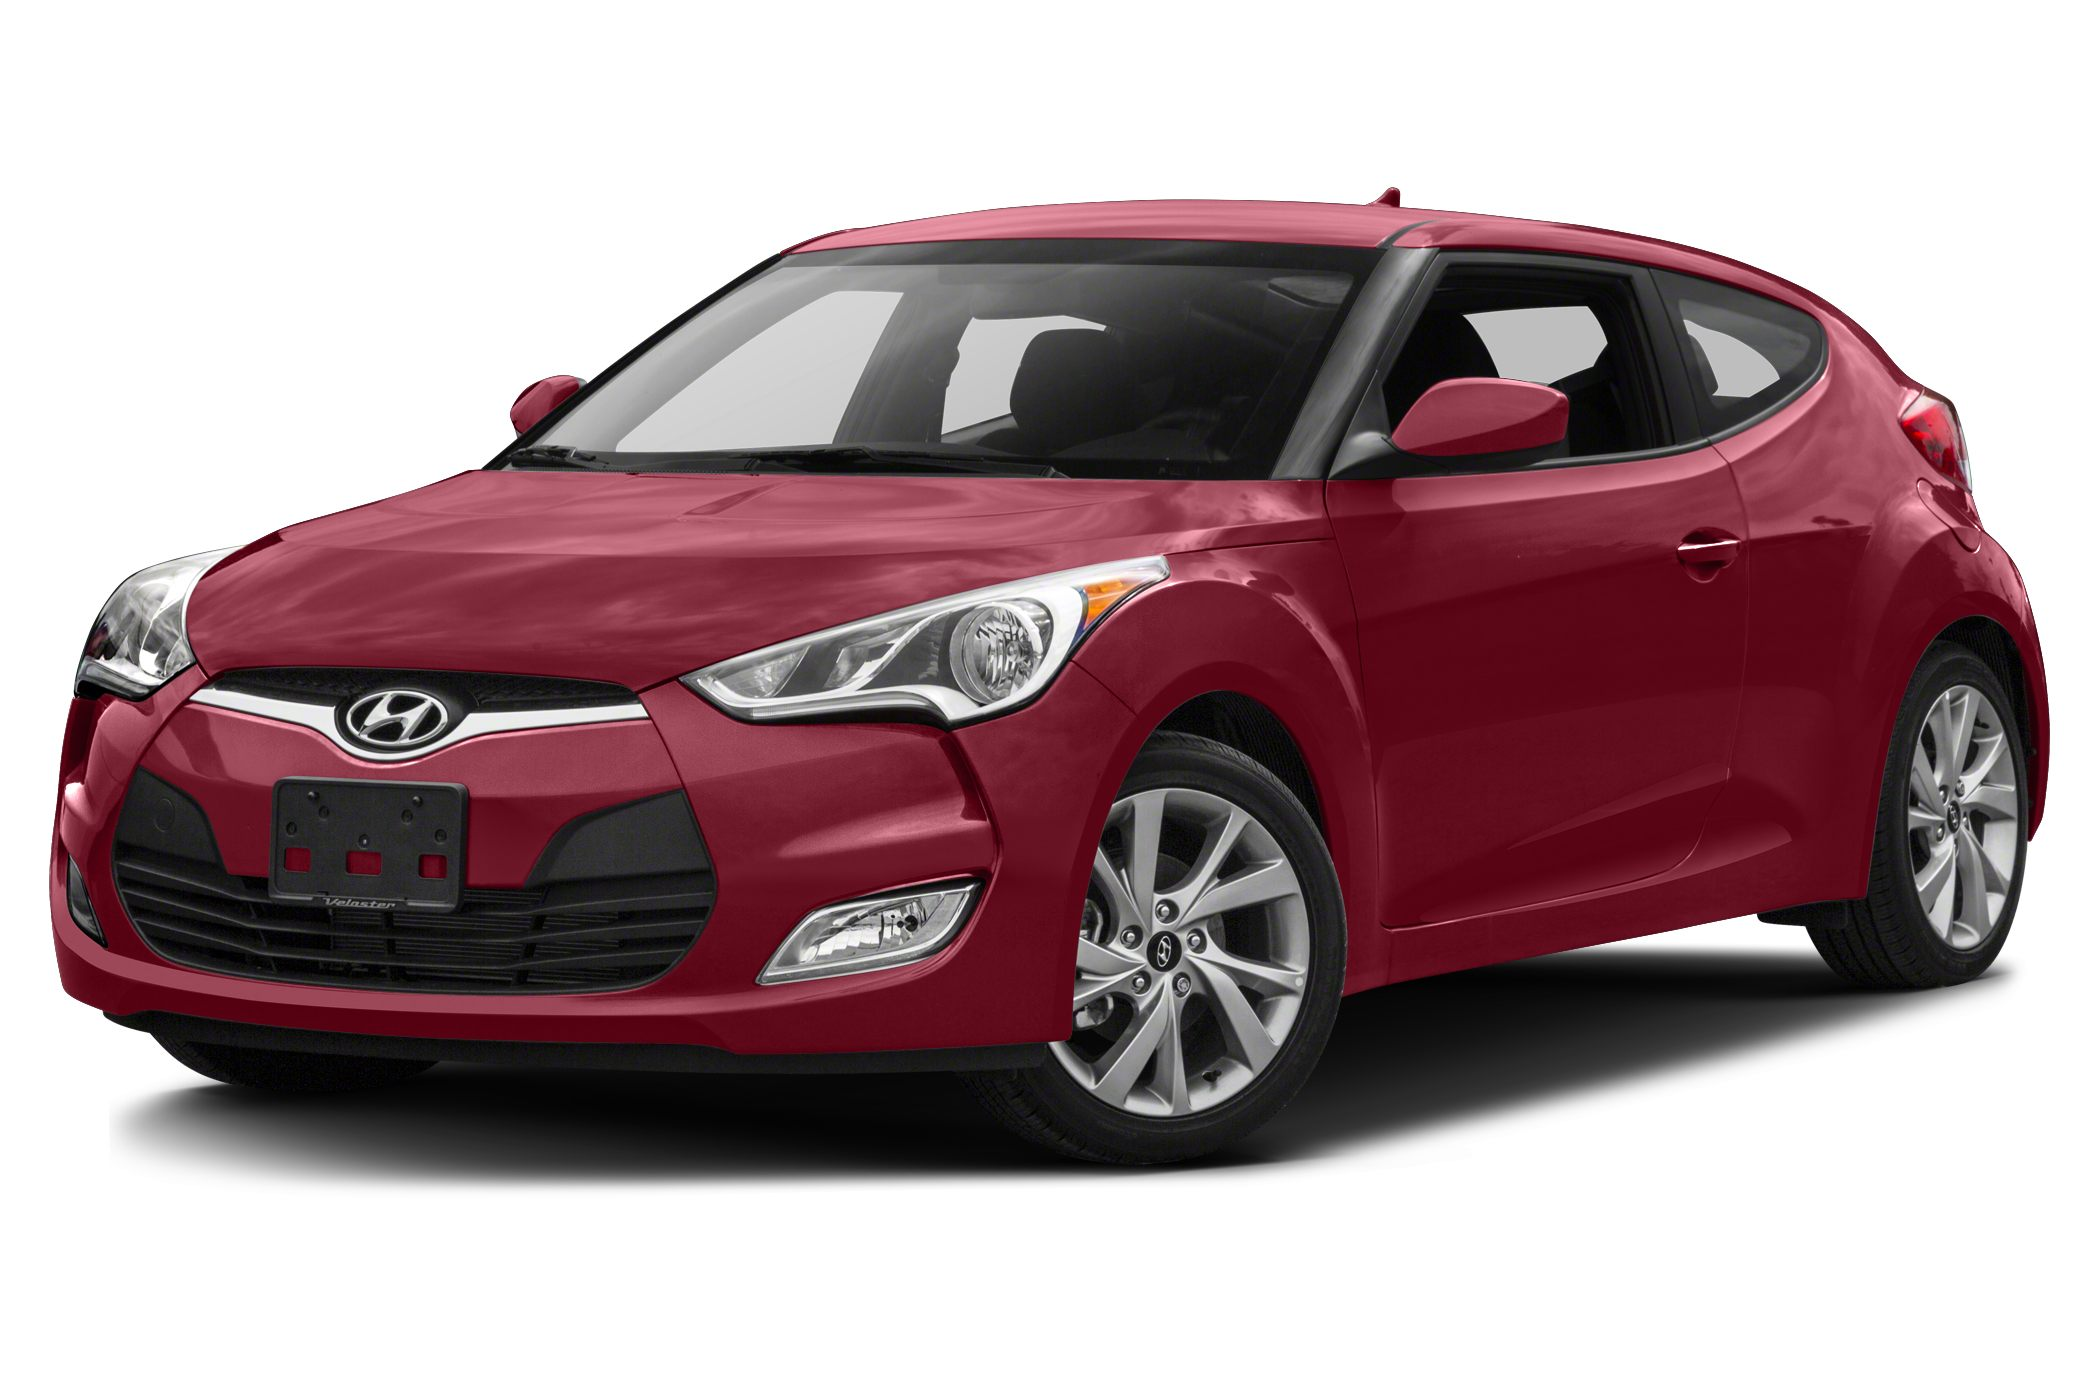 Hyundai Canada Incentives for the new 2019 Hyundai Veloster Coupe and Veloster Turbo in Milton, Toronto, and the GTA